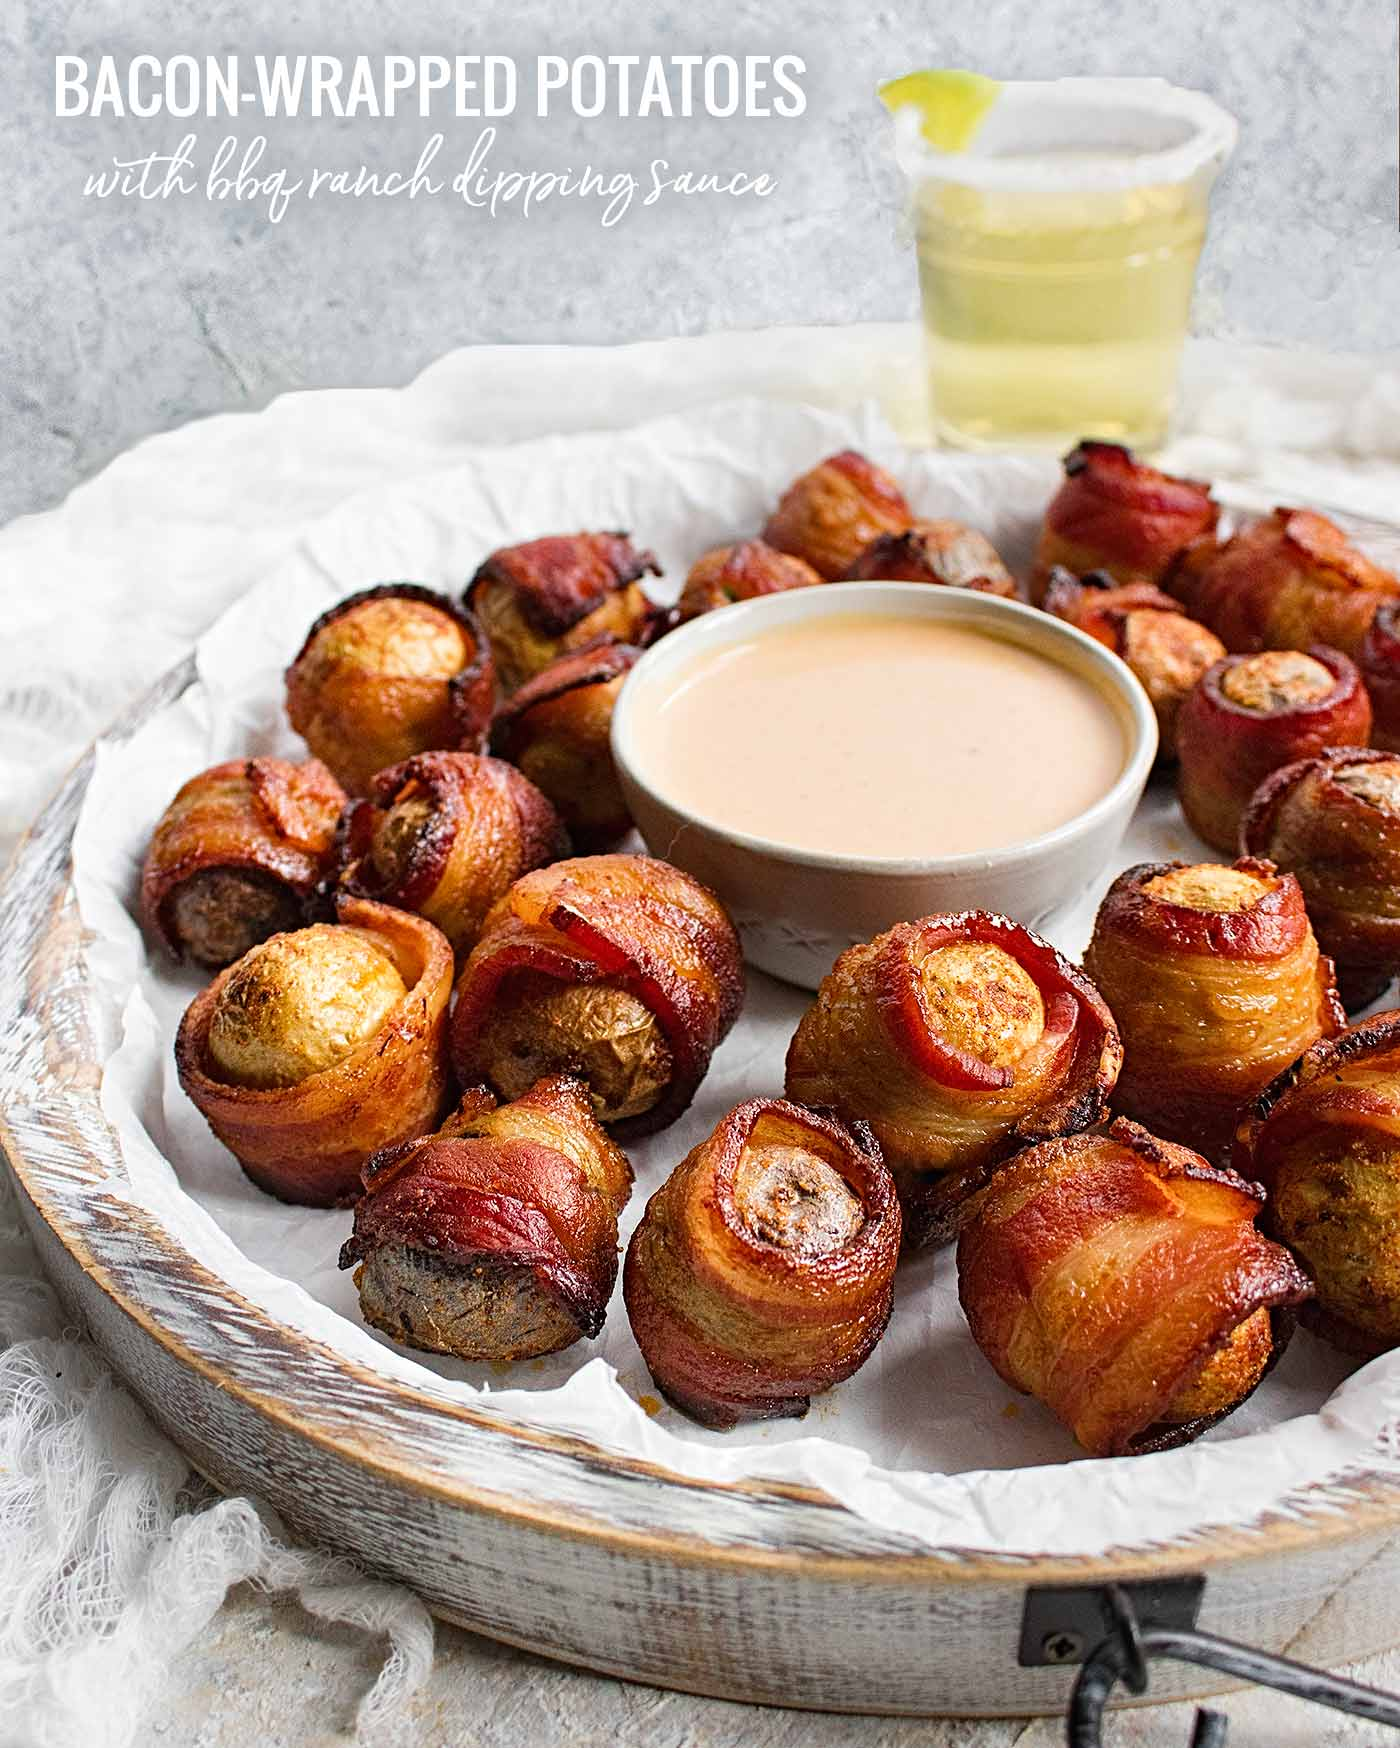 Bacon wrapped baby potatoes on a serving tray